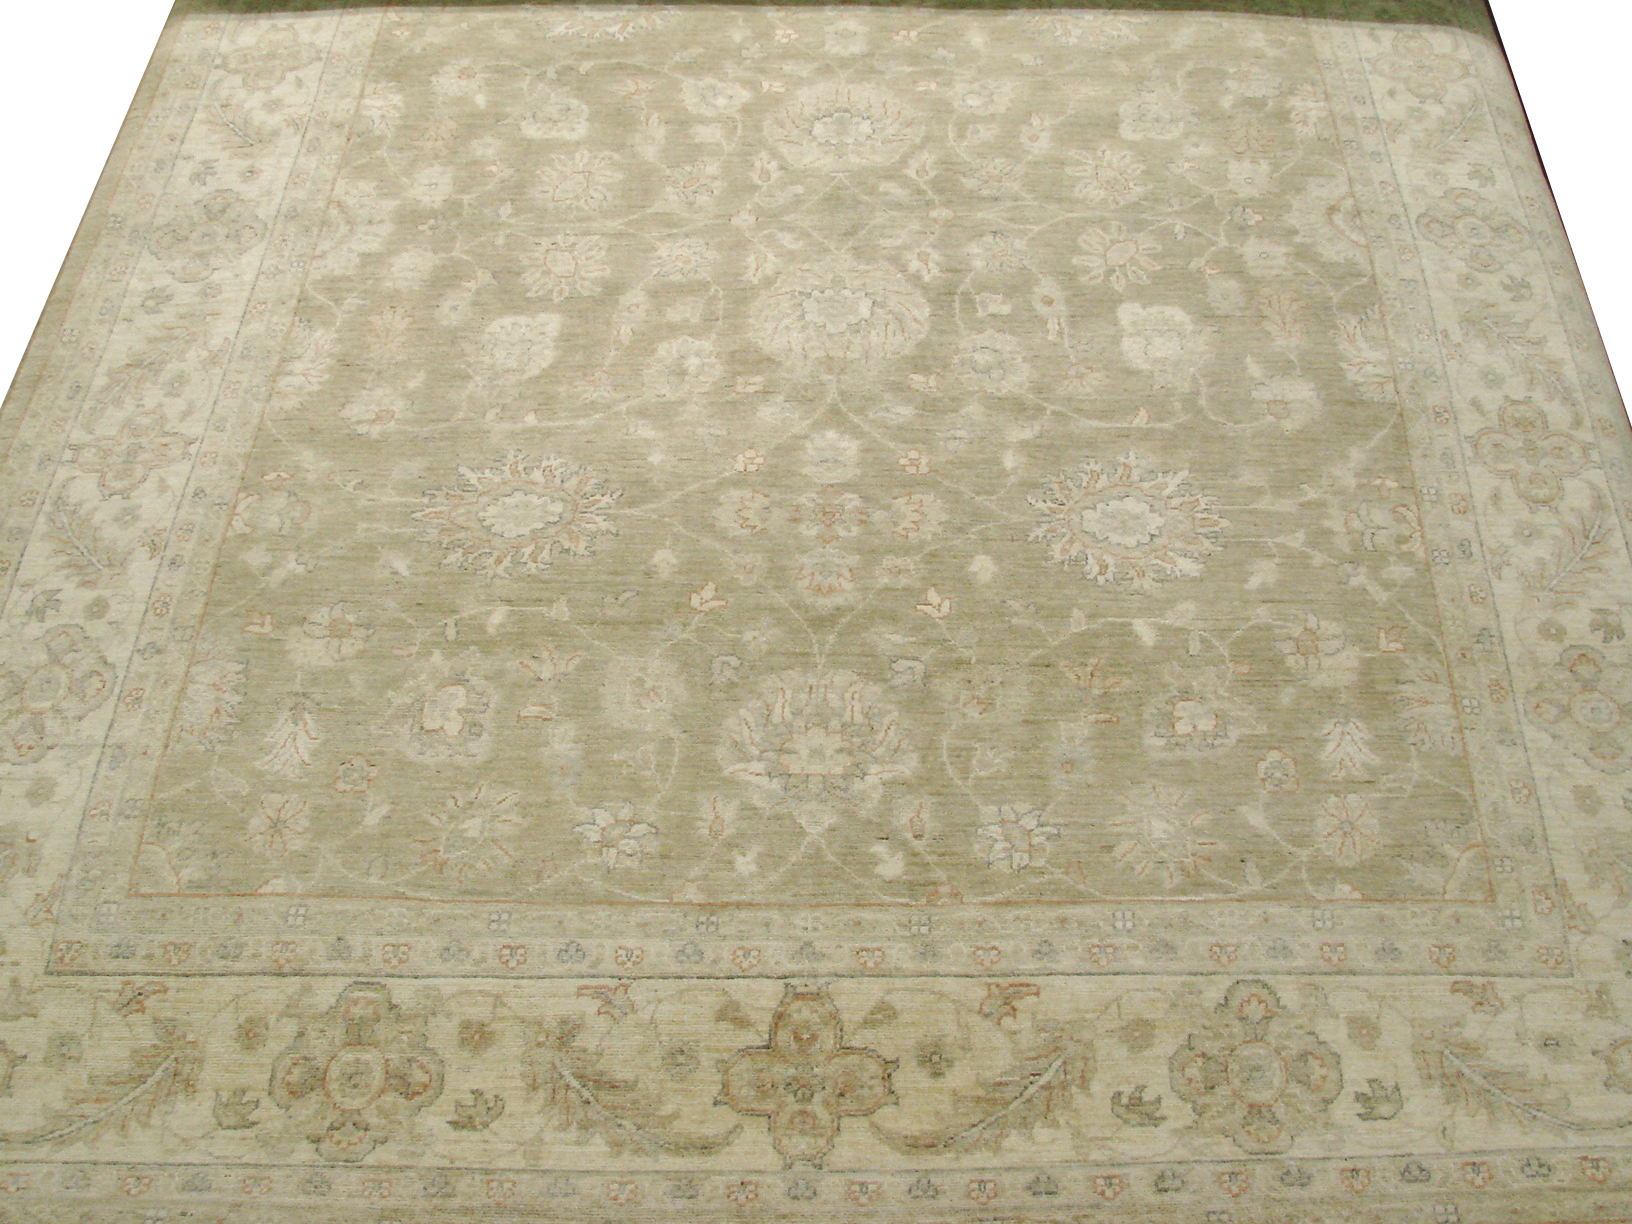 8x10 Peshawar Hand Knotted Wool Area Rug - MR14210